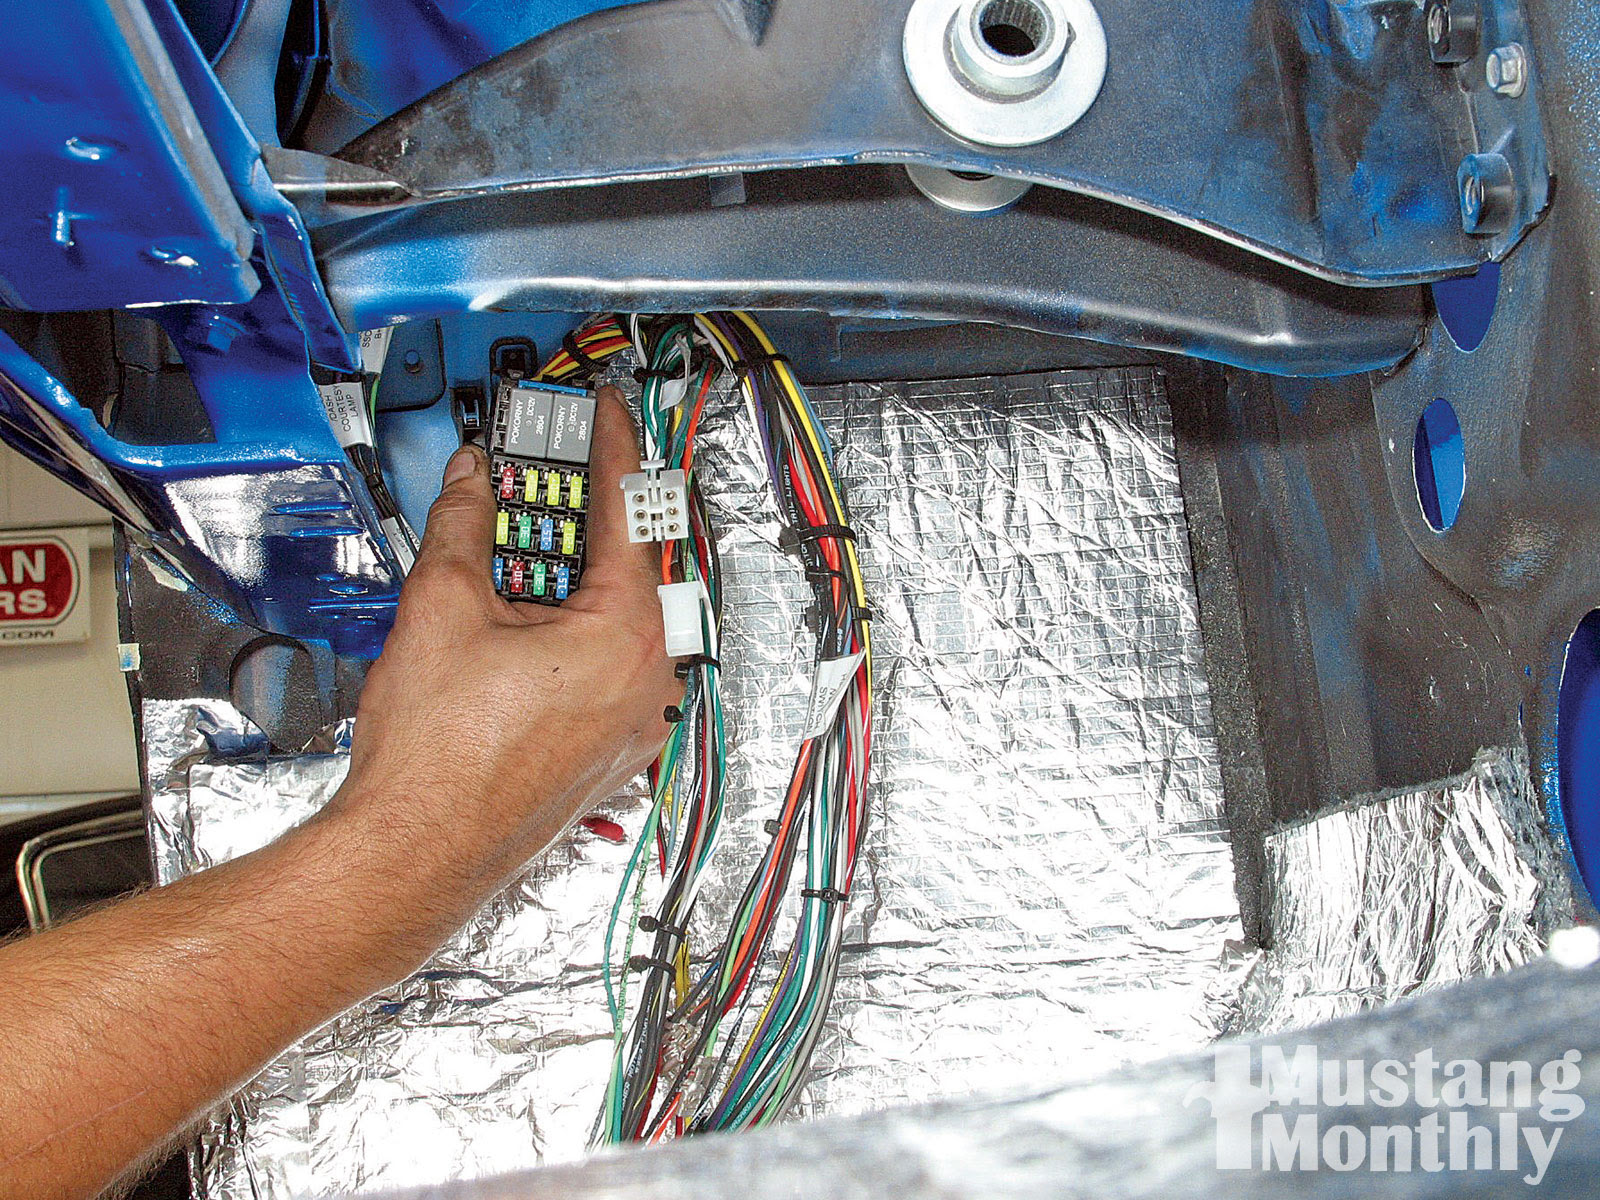 1972 Mustang Fuse Box Light Series Wiring Diagram Maxoncb Holden Commodore Jeanjaures37 Fr